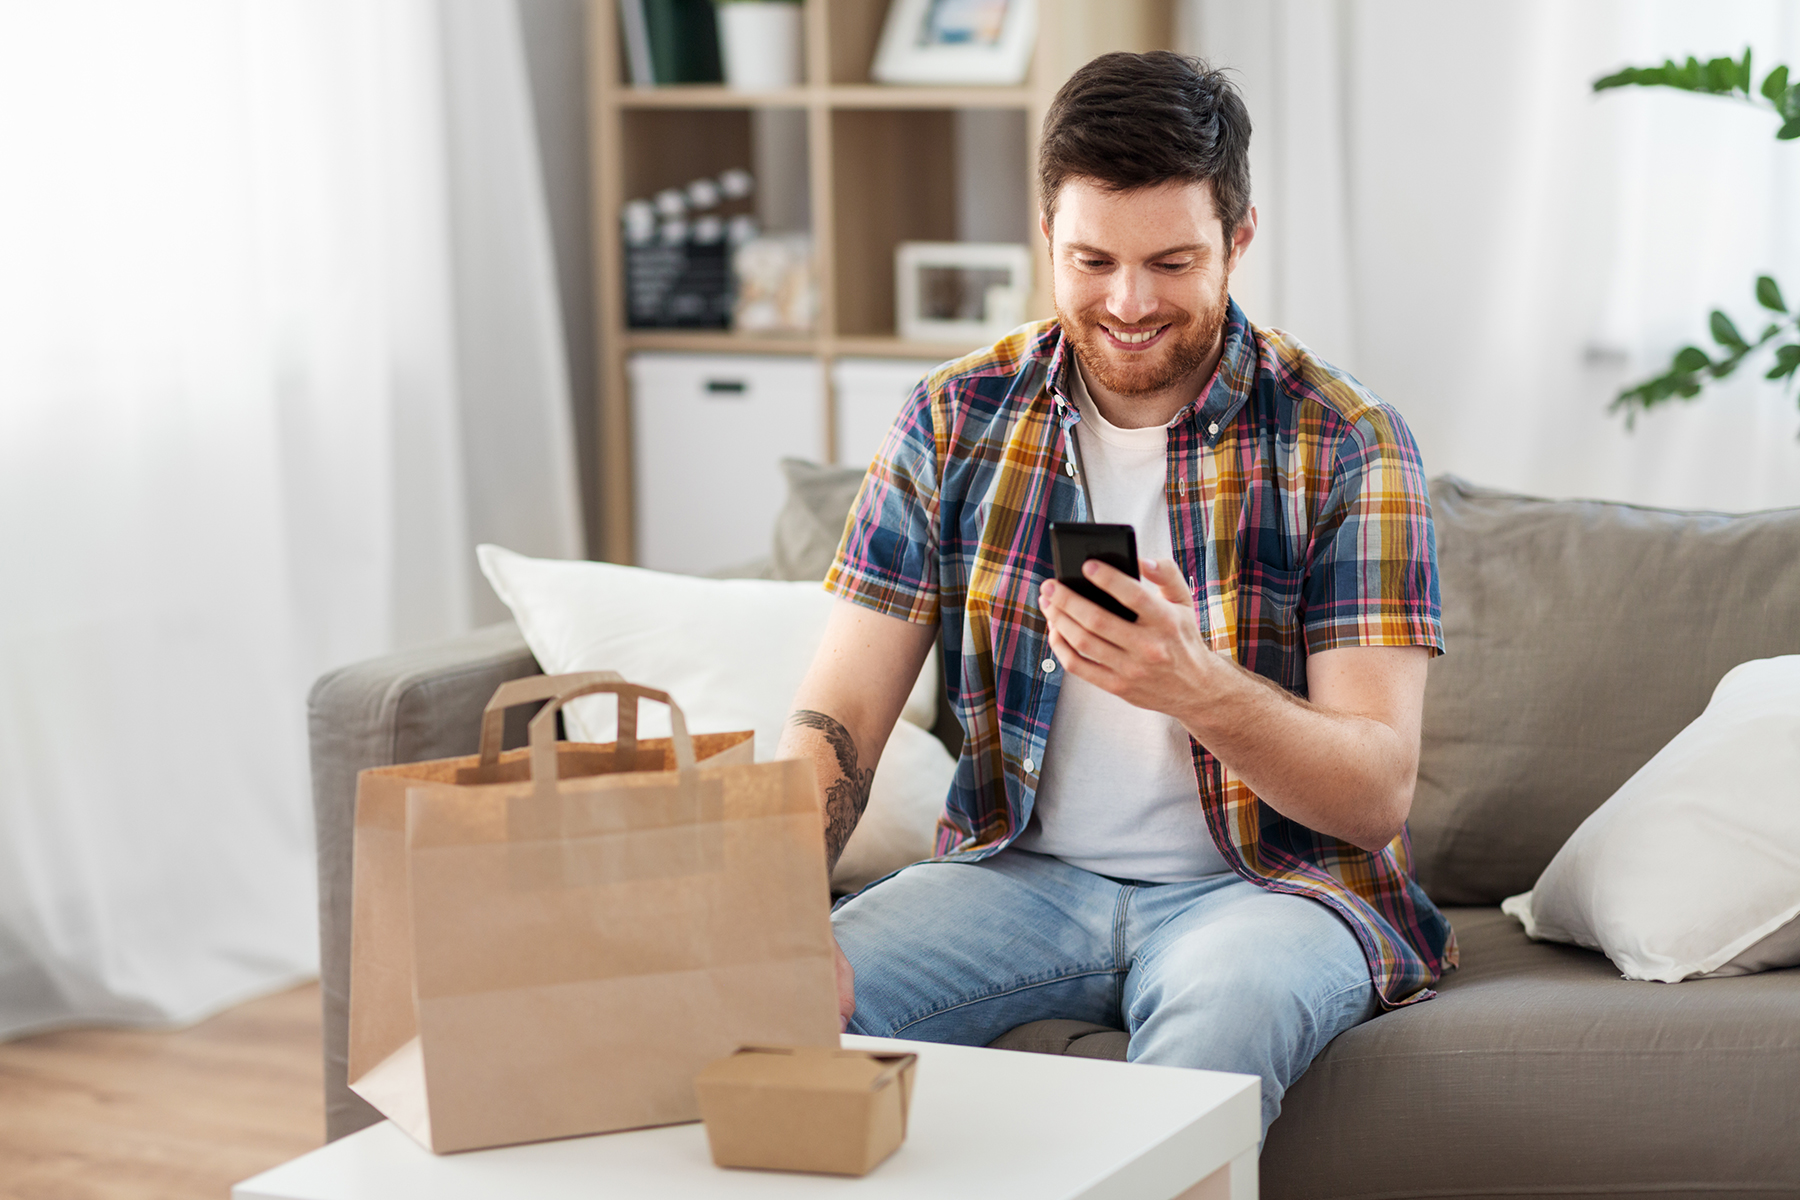 Guy looking at food ordering app after food is delivered